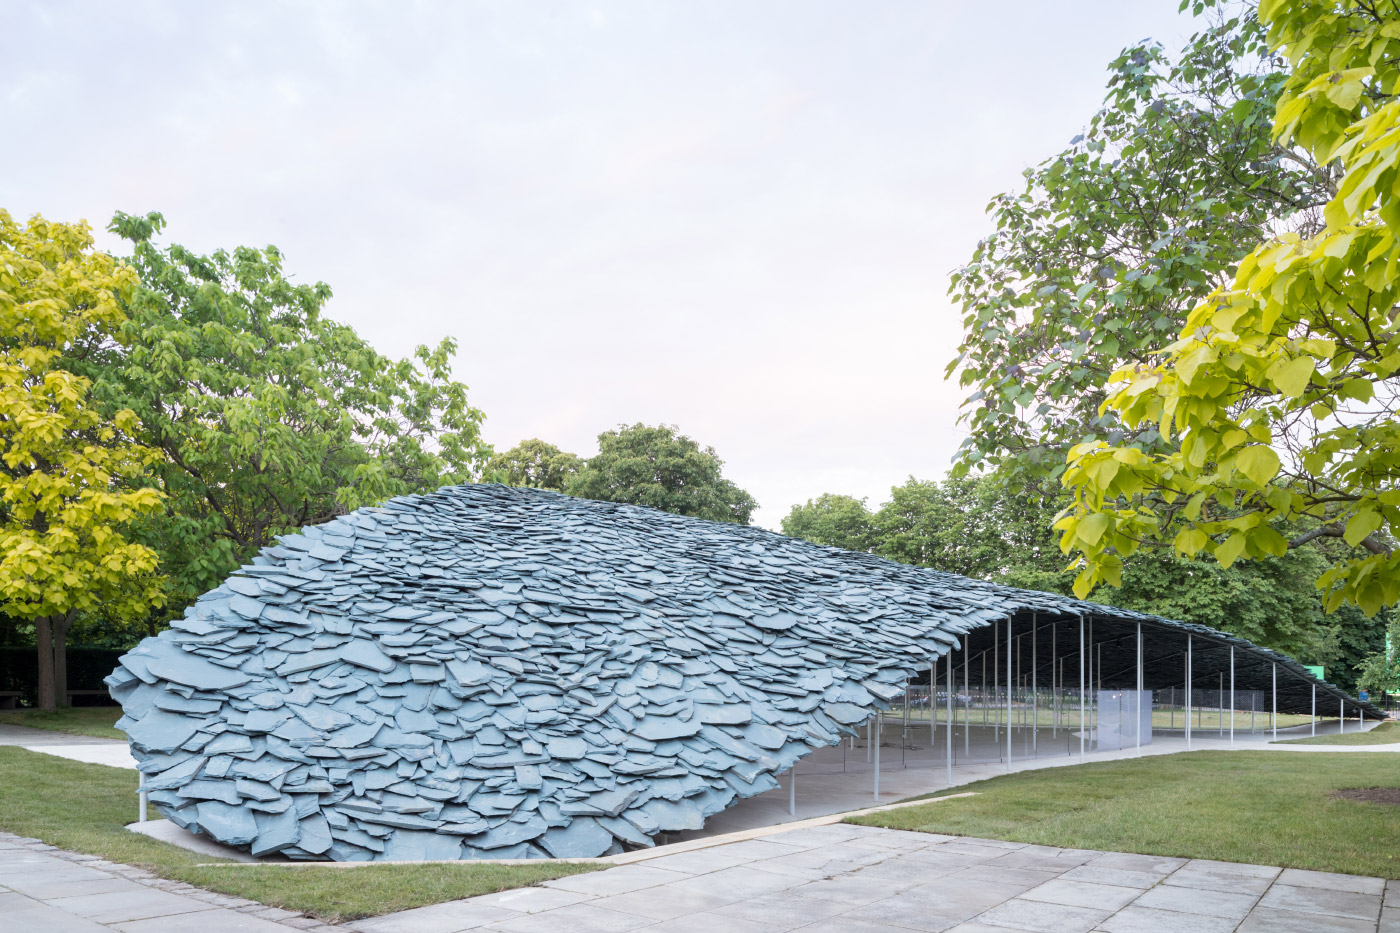 Photo of the 2019 Serpentine Pavilion, a low-slung building covered in slate tiles